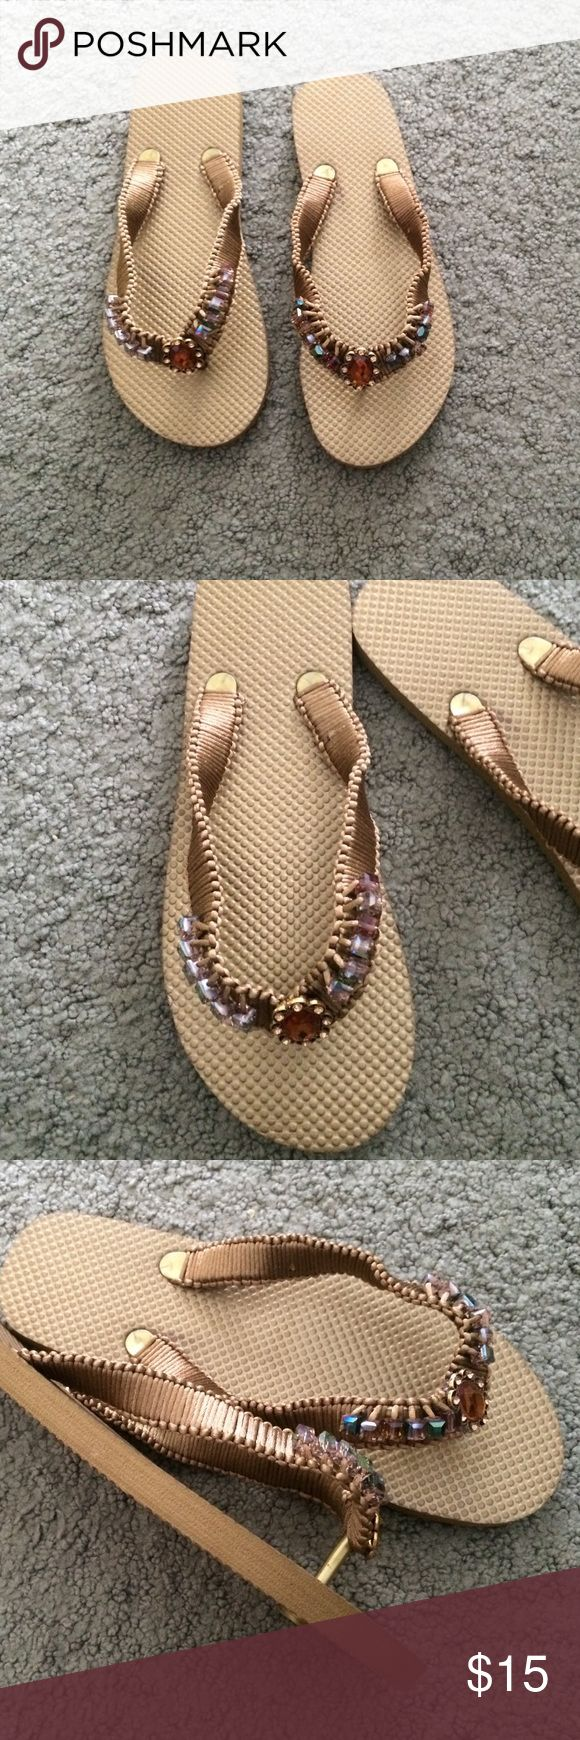 Hand Decorated Flip Flops Gold flip flops decorated with gold nylon cord and pretty matching beads. Brand new. Never worn. Shoes Sandals